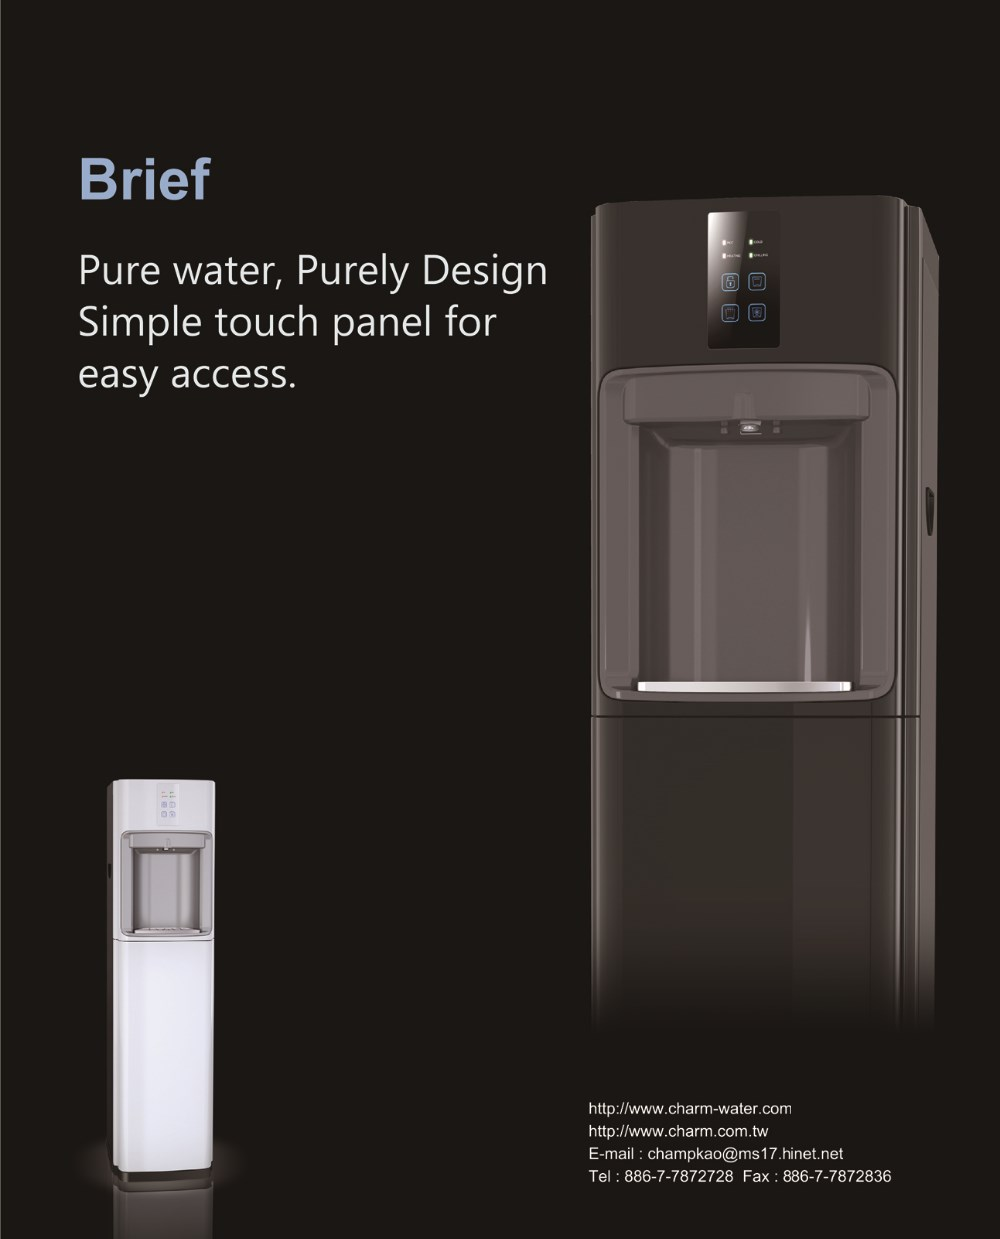 Cold Hot Free standing Purely Design water dispenser Simple touch panel